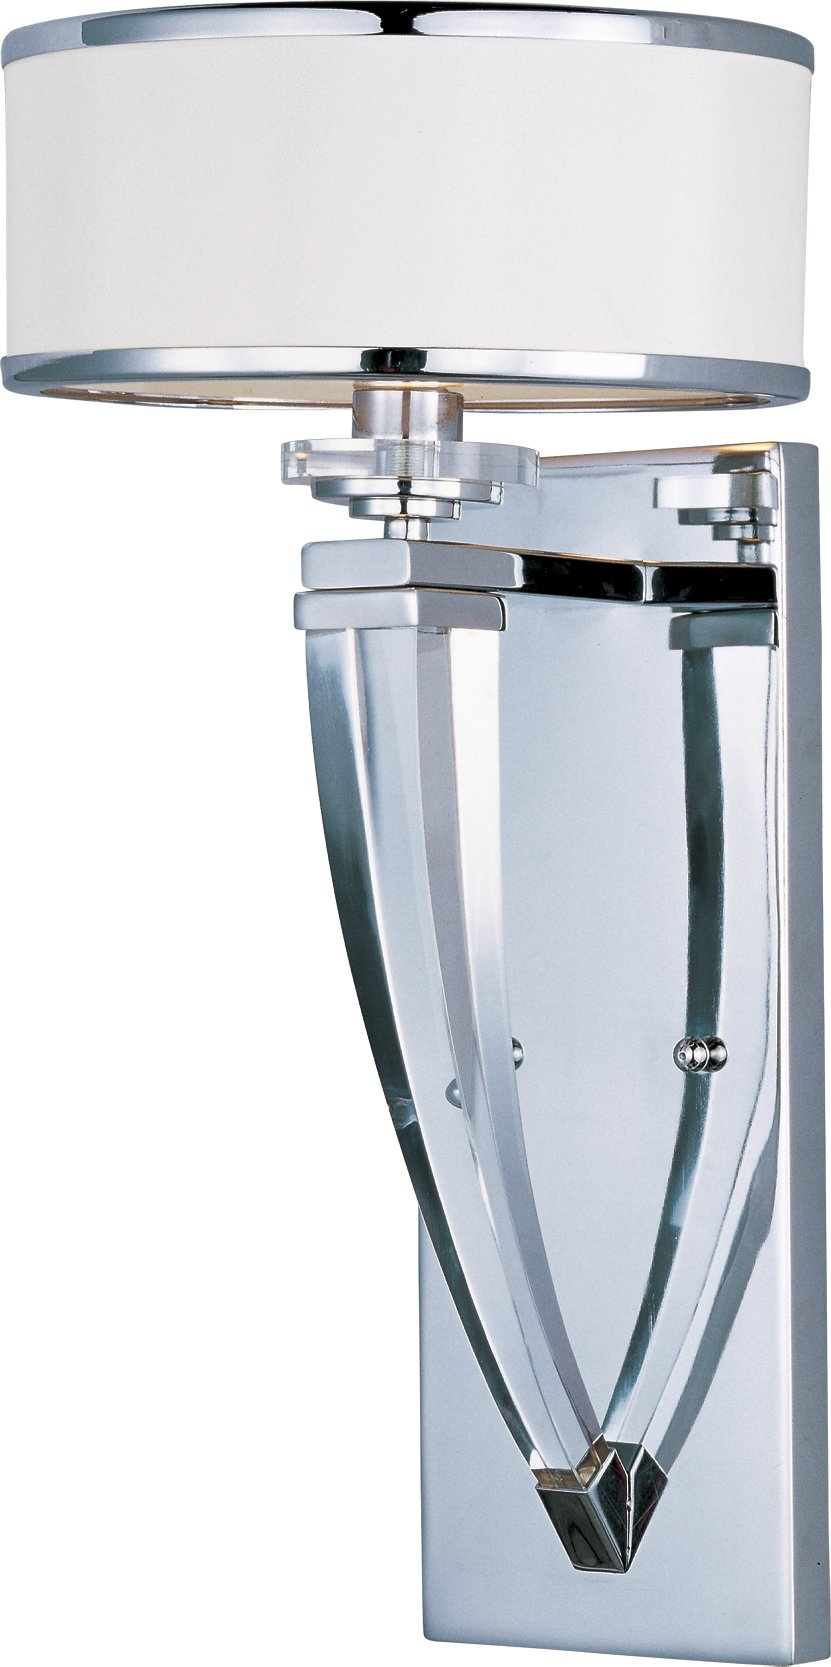 Maxim 39828BCWTPC Metro 1-Light Wall Sconce, Polished Chrome Finish, Beveled Crystal Glass, G9 Xenon Xenon Bulb , 100W Max., Wet Safety Rating, Standard Dimmable, Glass Shade Material, 1150 Rated Lumens